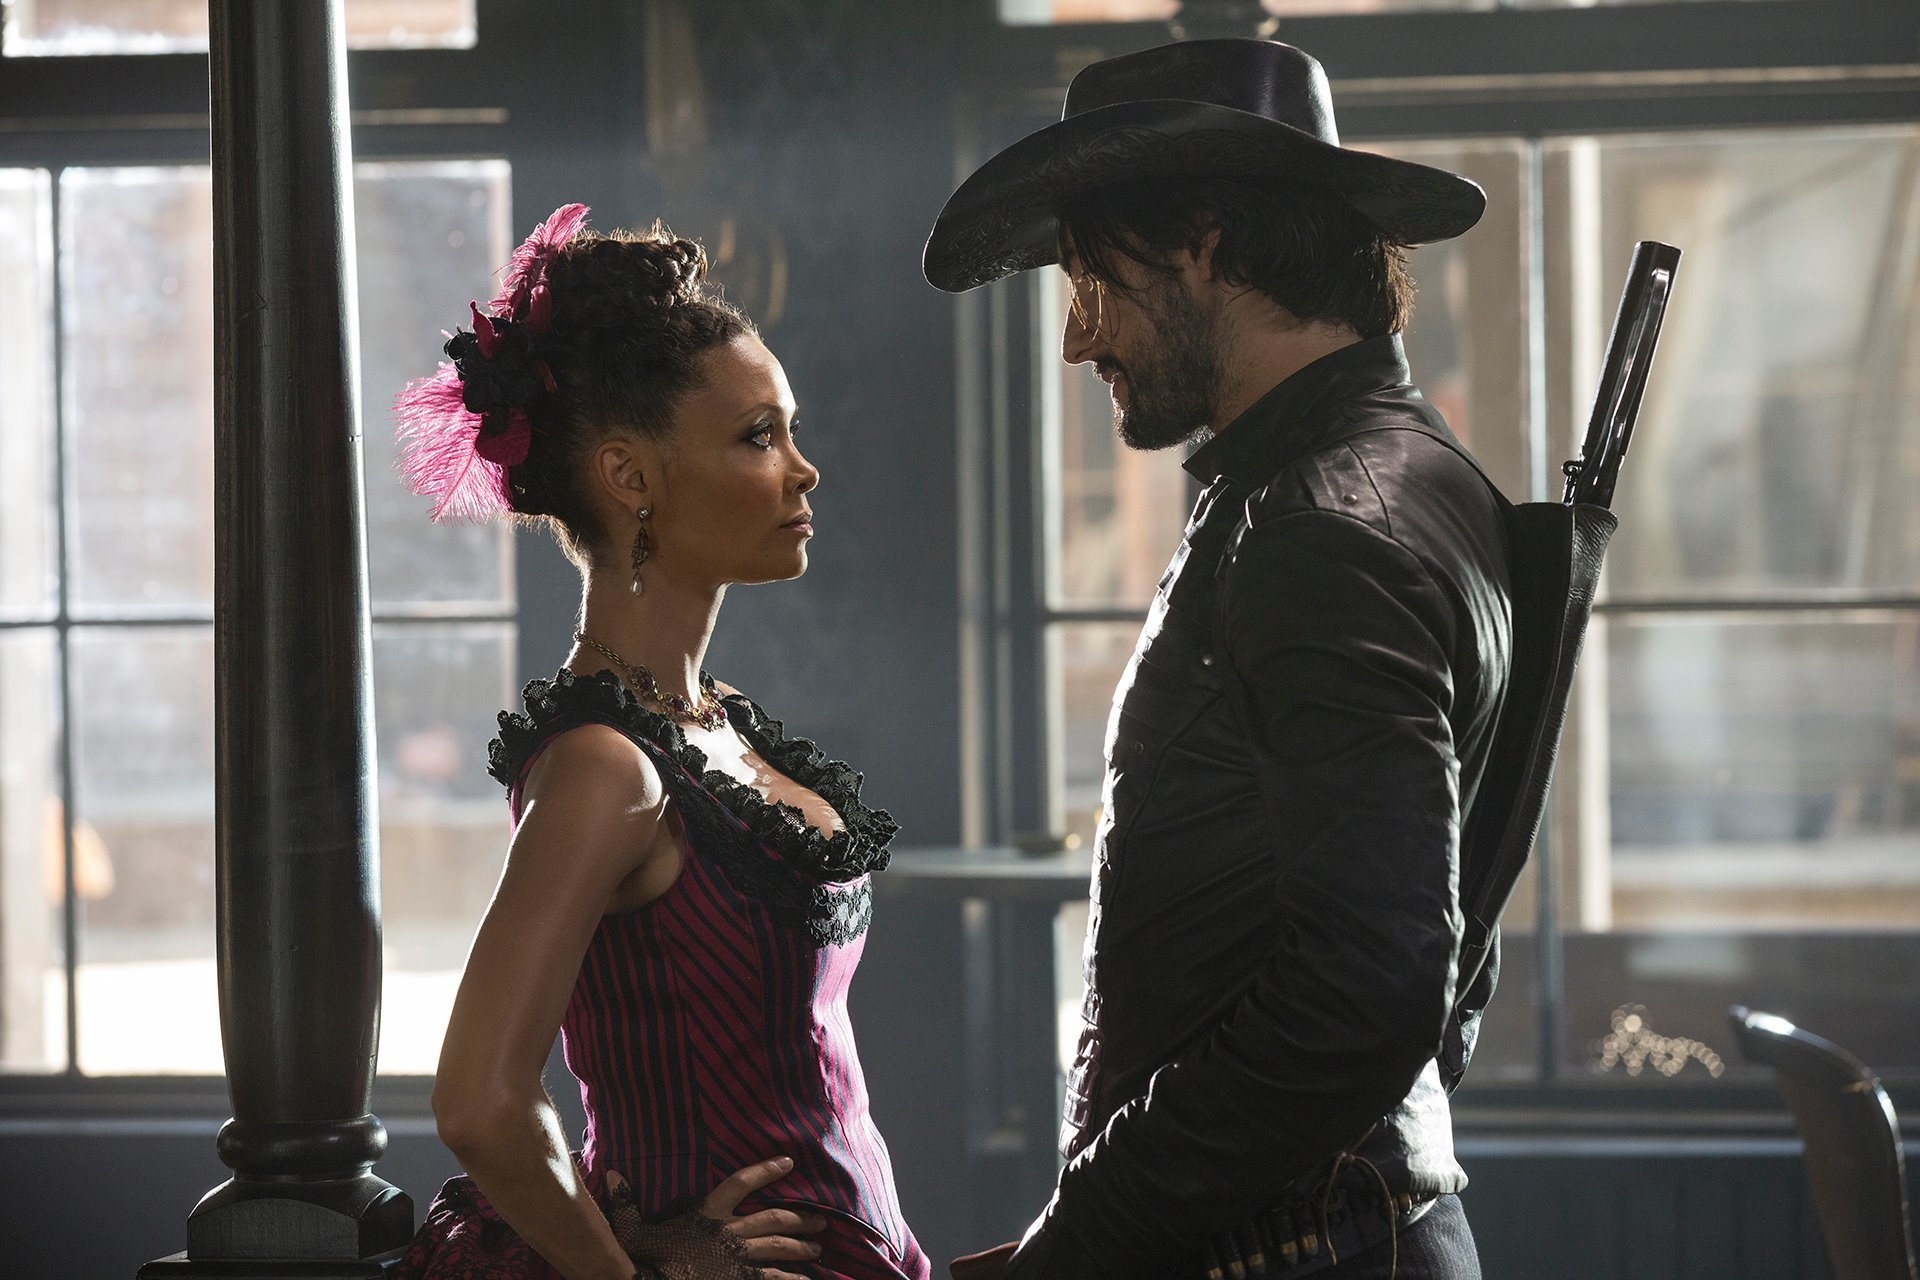 Westworld season 2: Cast member confirms their return to the HBO series